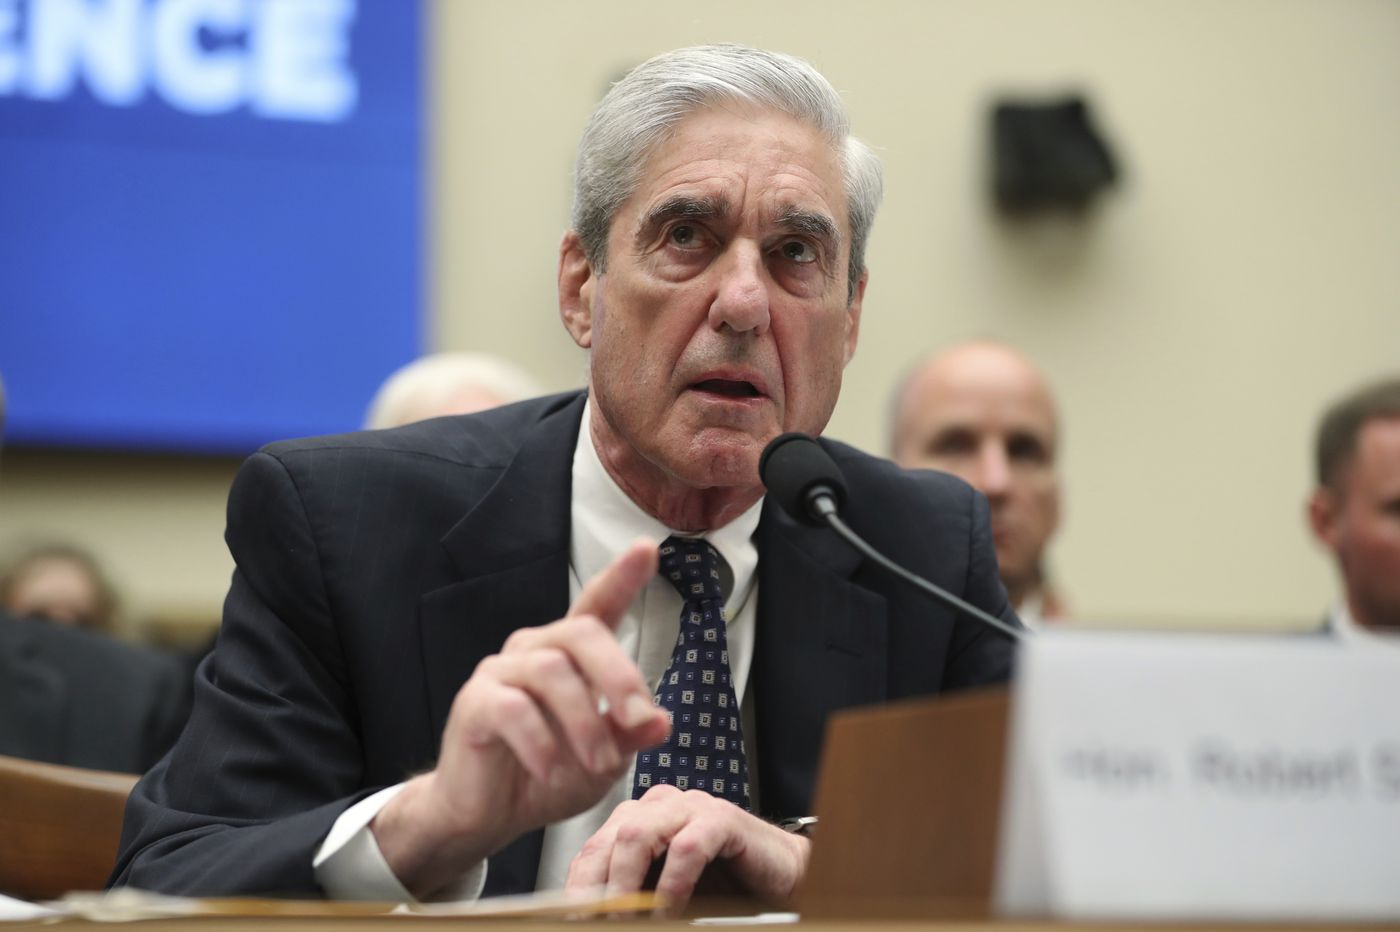 Robert Mueller's testimony: Embarrassing and hard to watch, no matter which side you're on | Christine Flowers